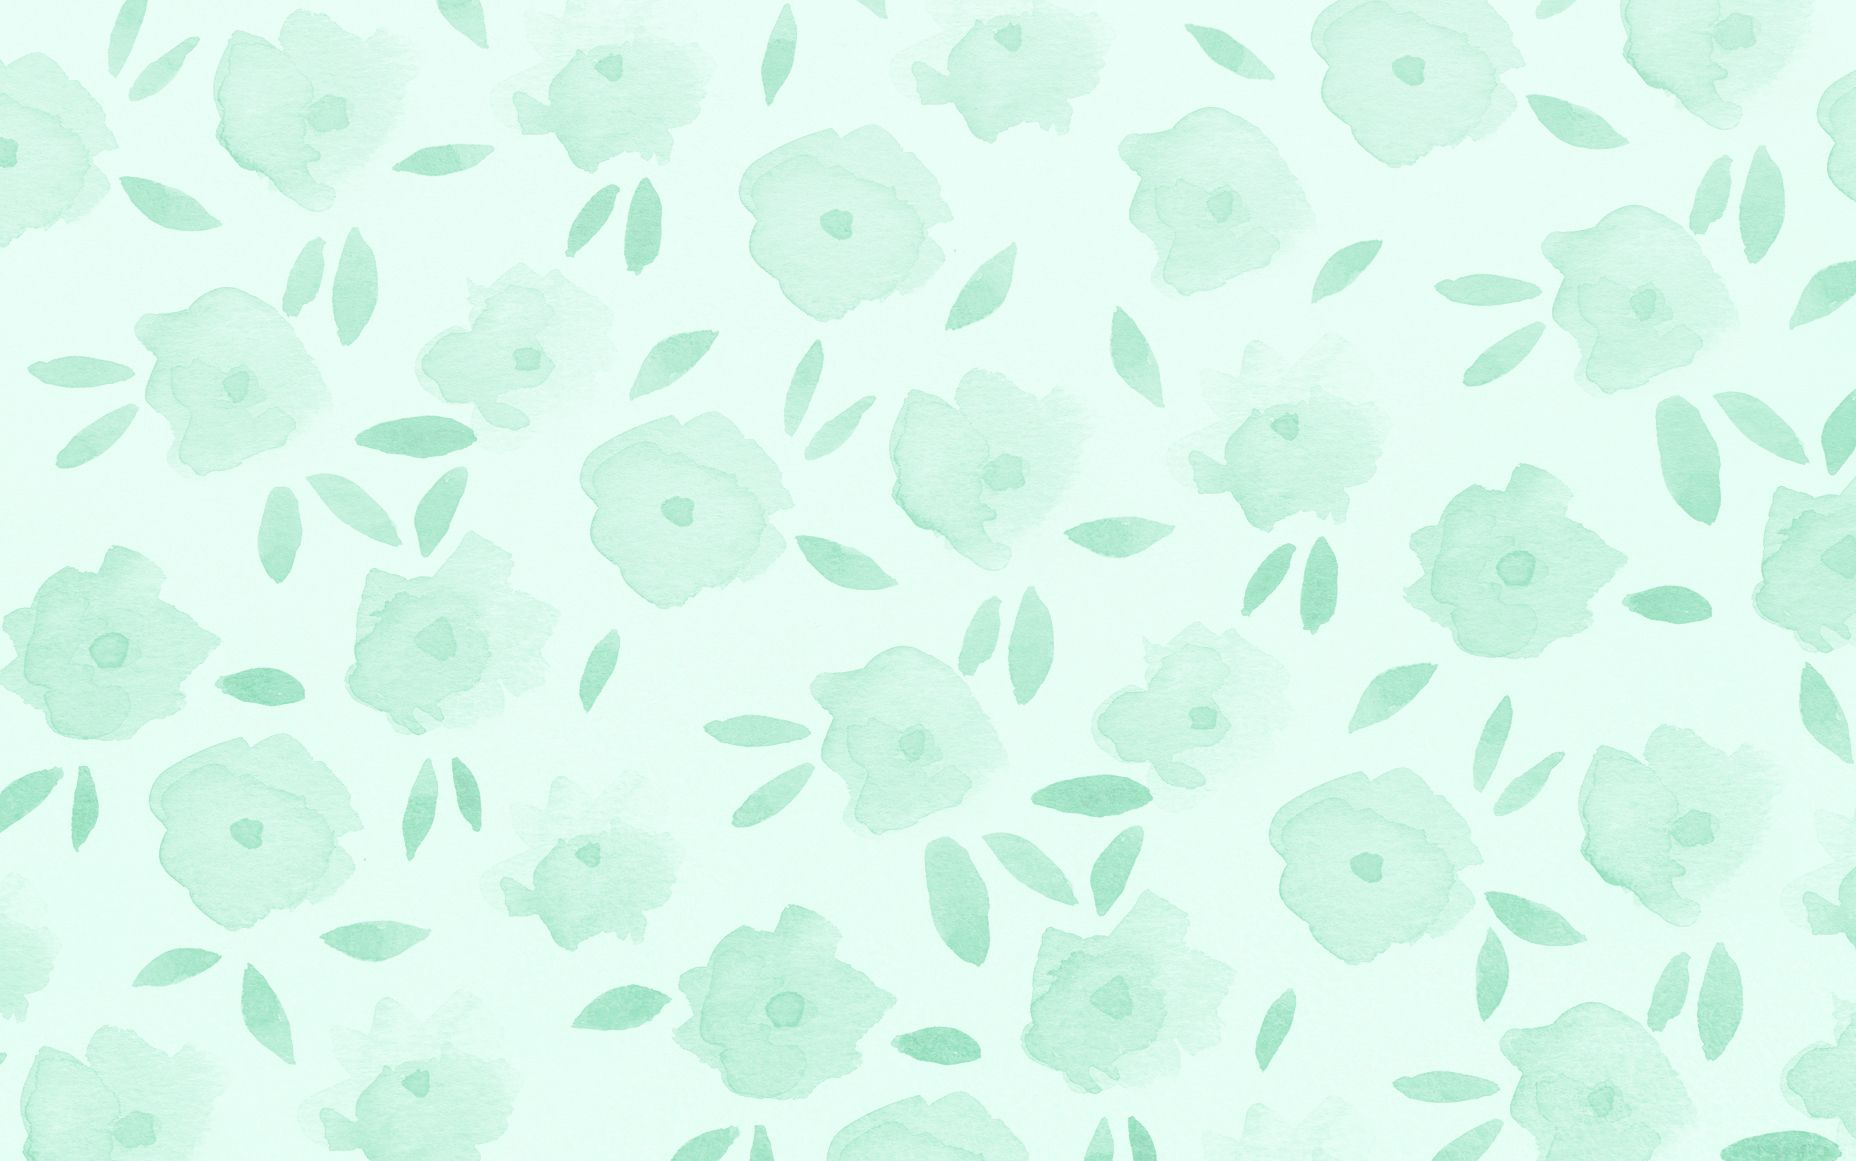 Mint Aesthetic Laptop Wallpapers Top Free Mint Aesthetic Laptop